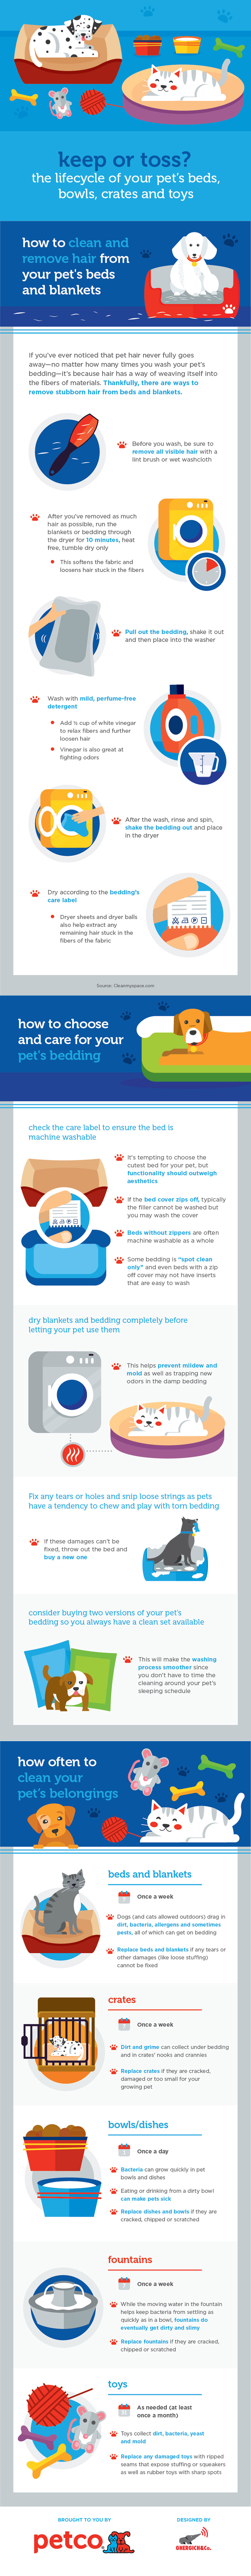 clean or toss pet bowls toys beds infographic